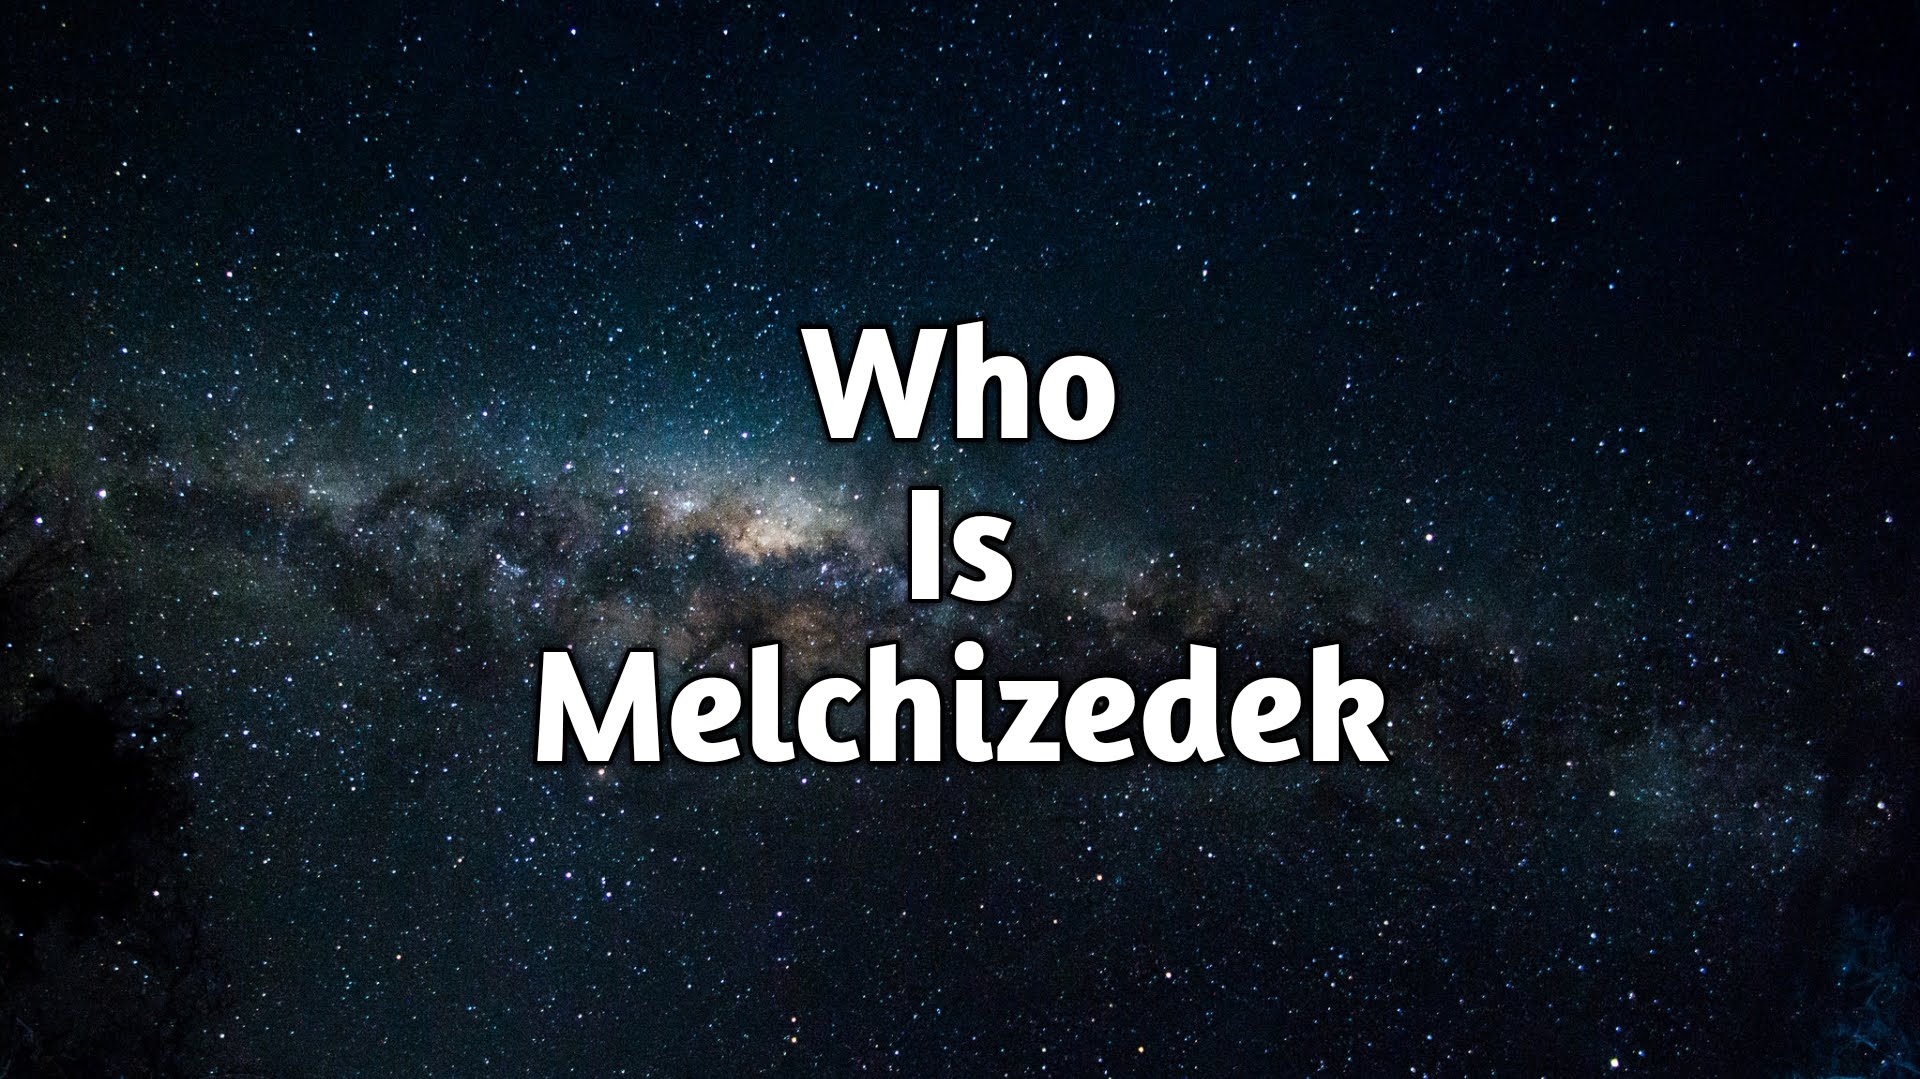 Who Is Melchizedek